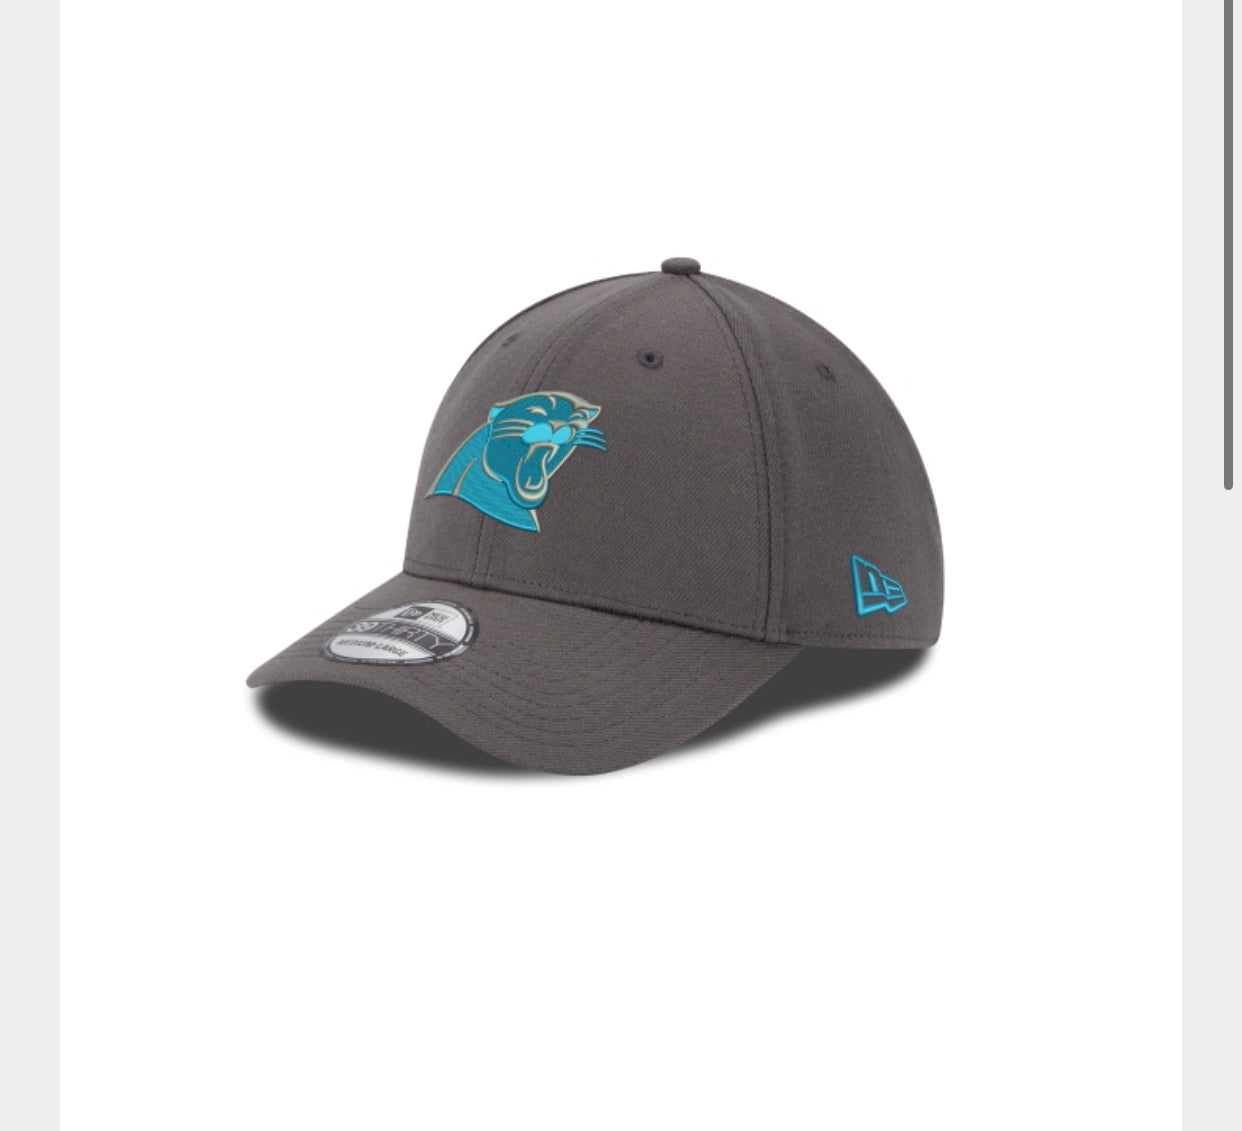 Carolina Panthers New Era 3930 Grapite Hat - AtlanticCoastSports